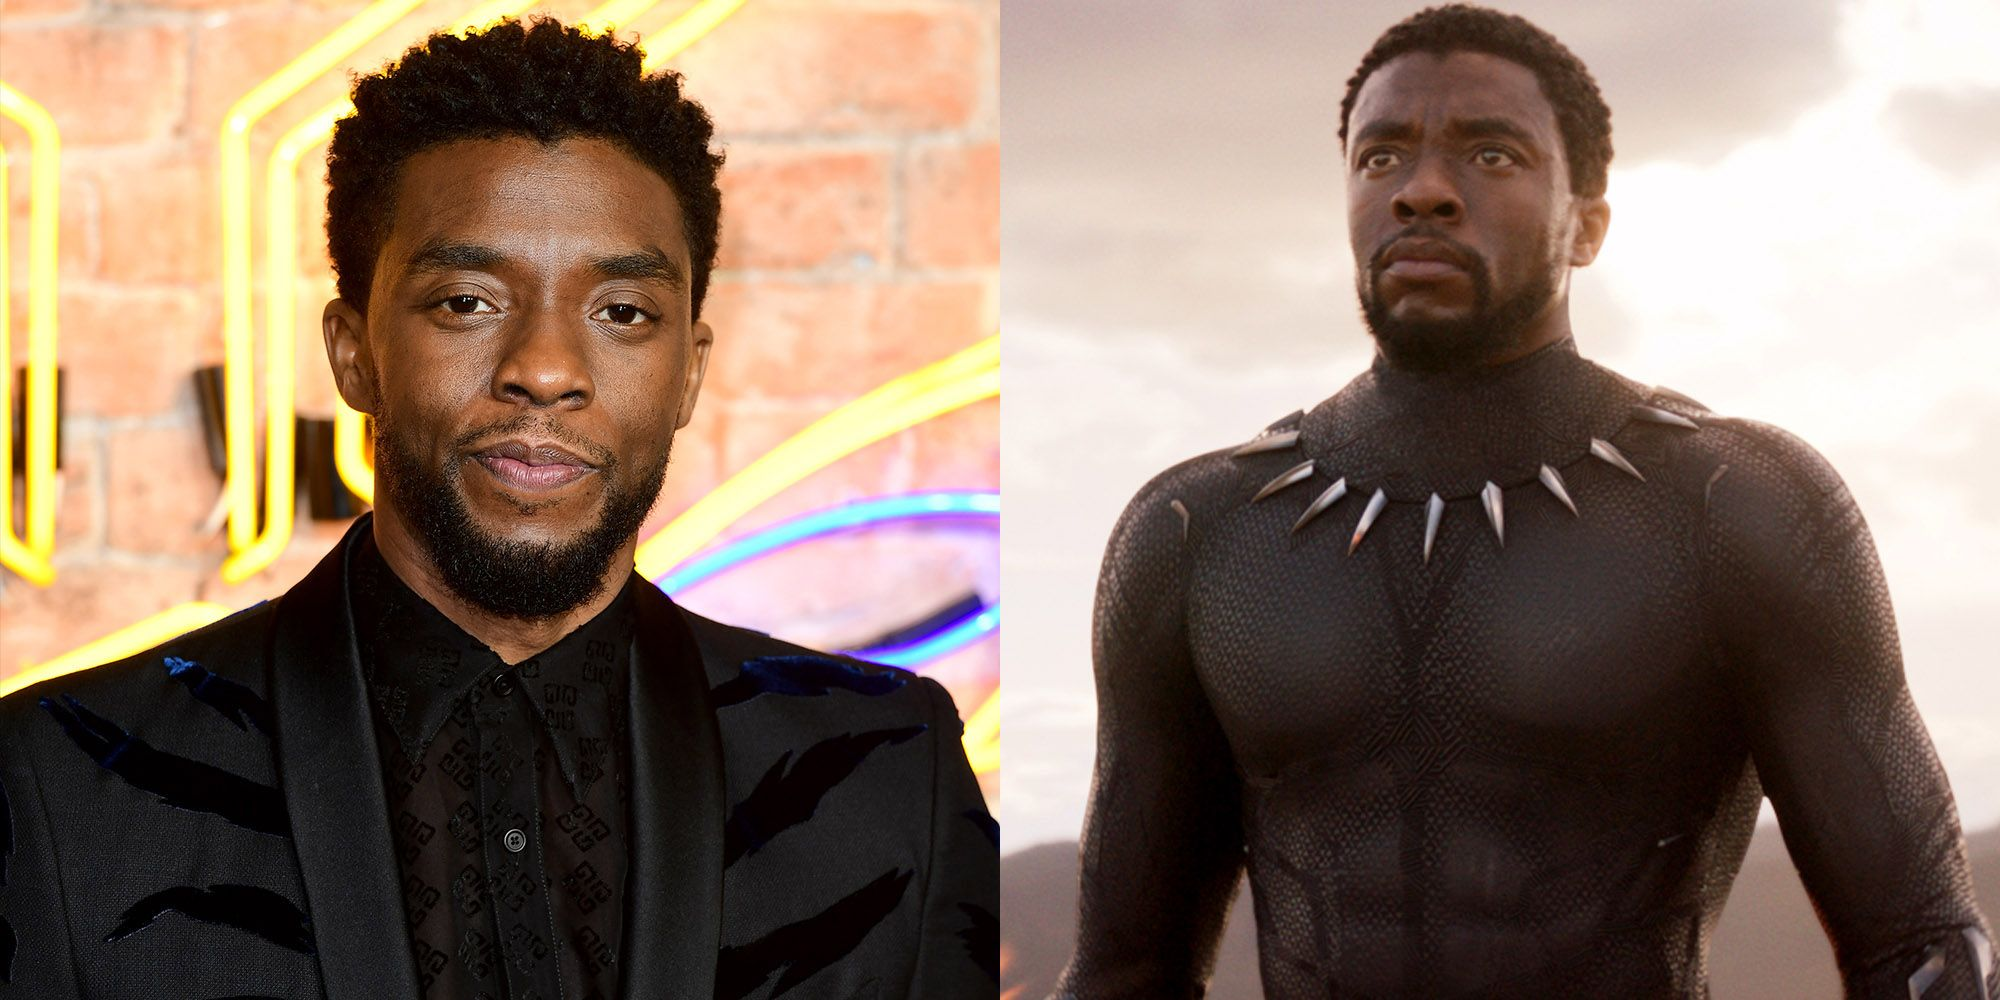 Chadwick Boseman as T'Challa Black Panther